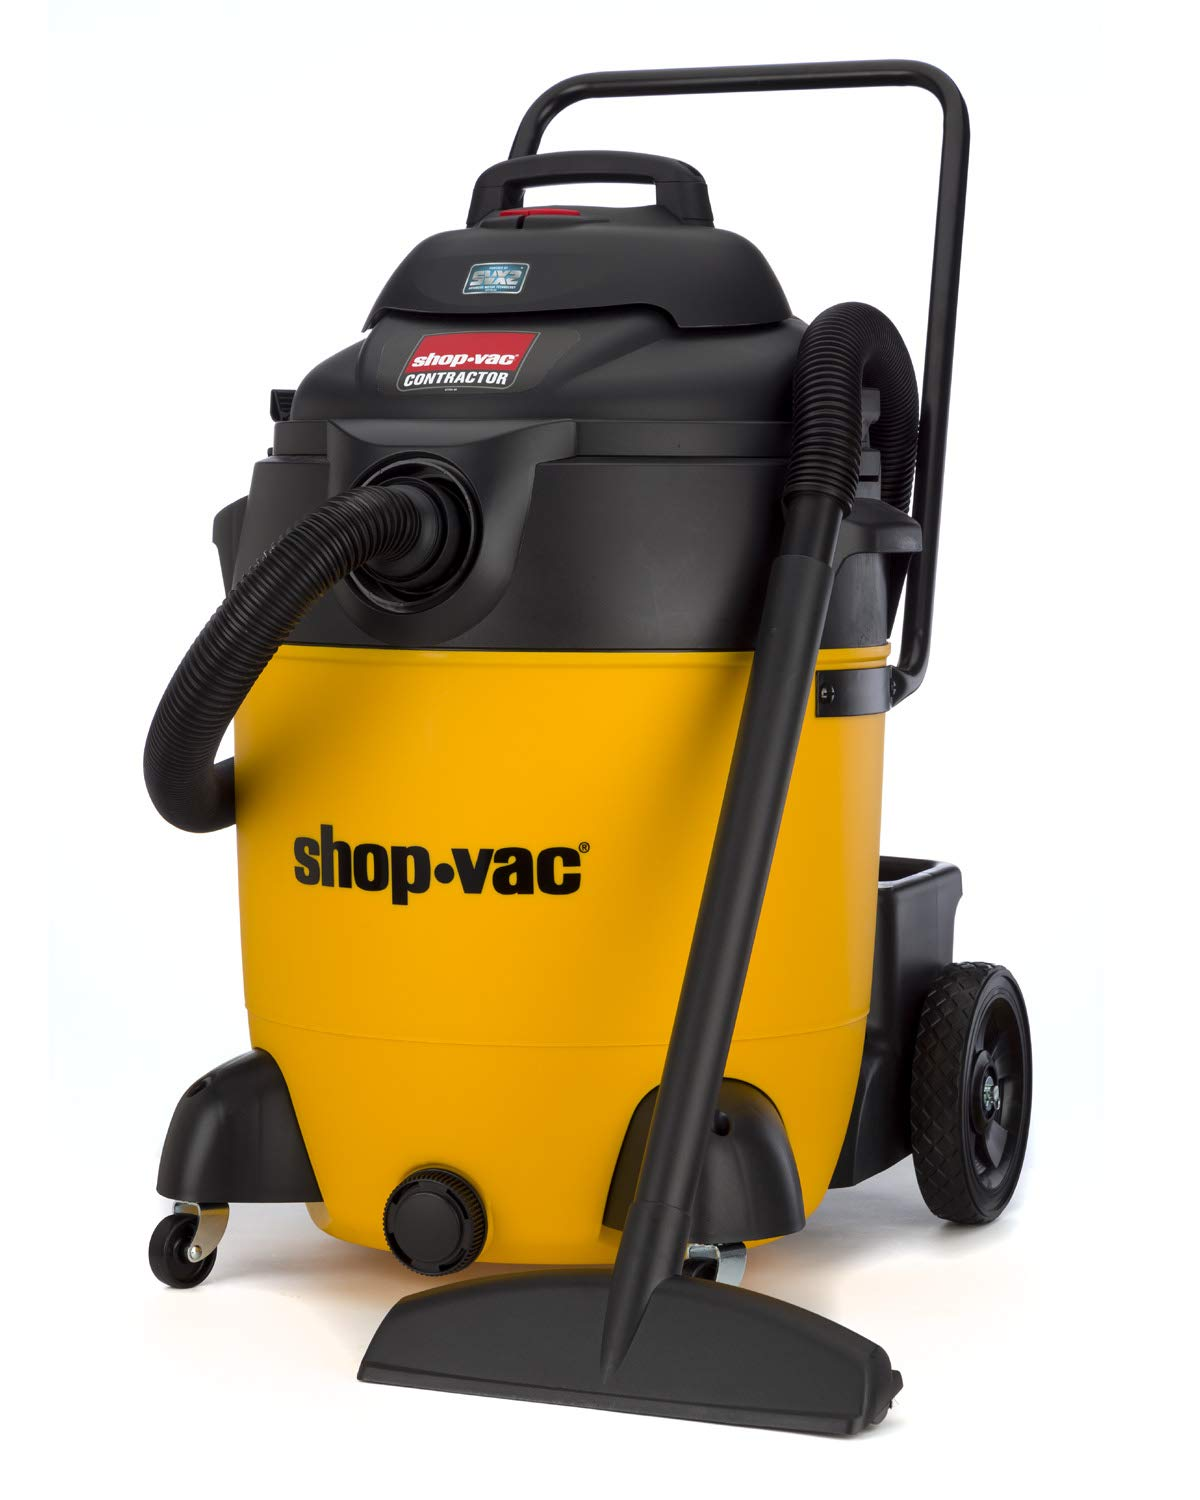 Shop-Vac 9627510 24 Gallon 6.5 Peak HP Contractor Wet Dry Vacuum